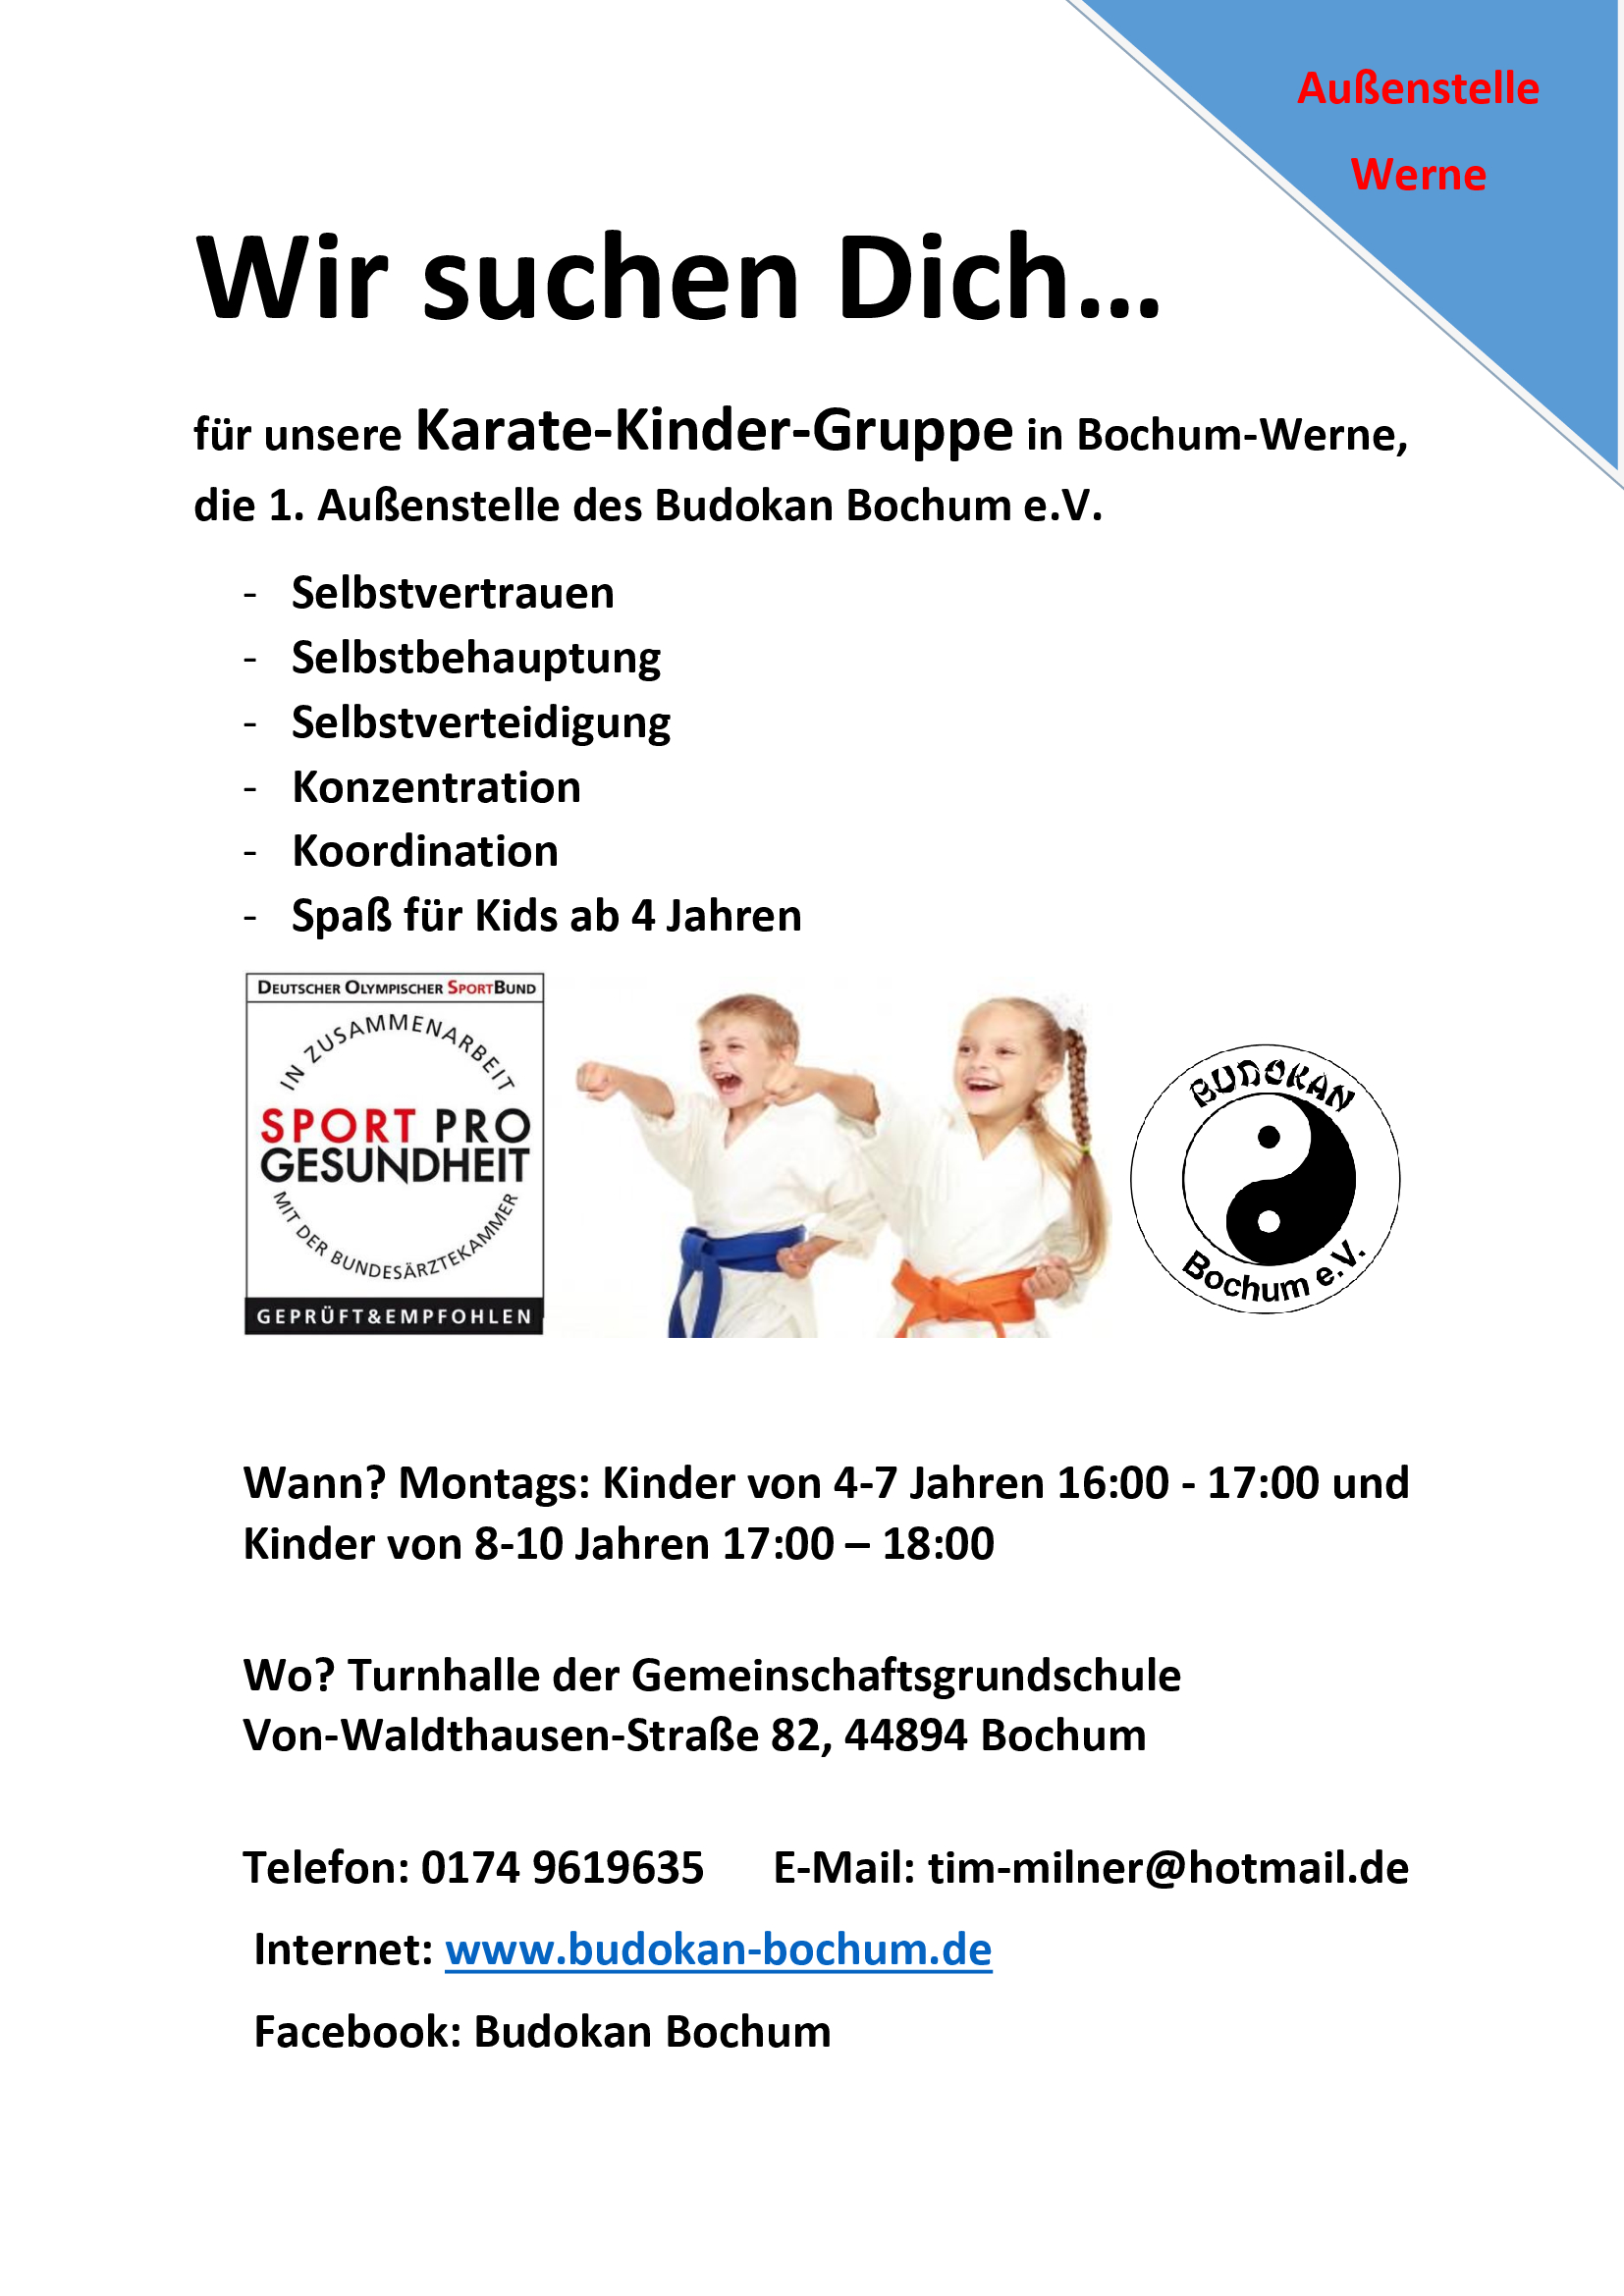 Karate-Kinder in Bochum-Werne